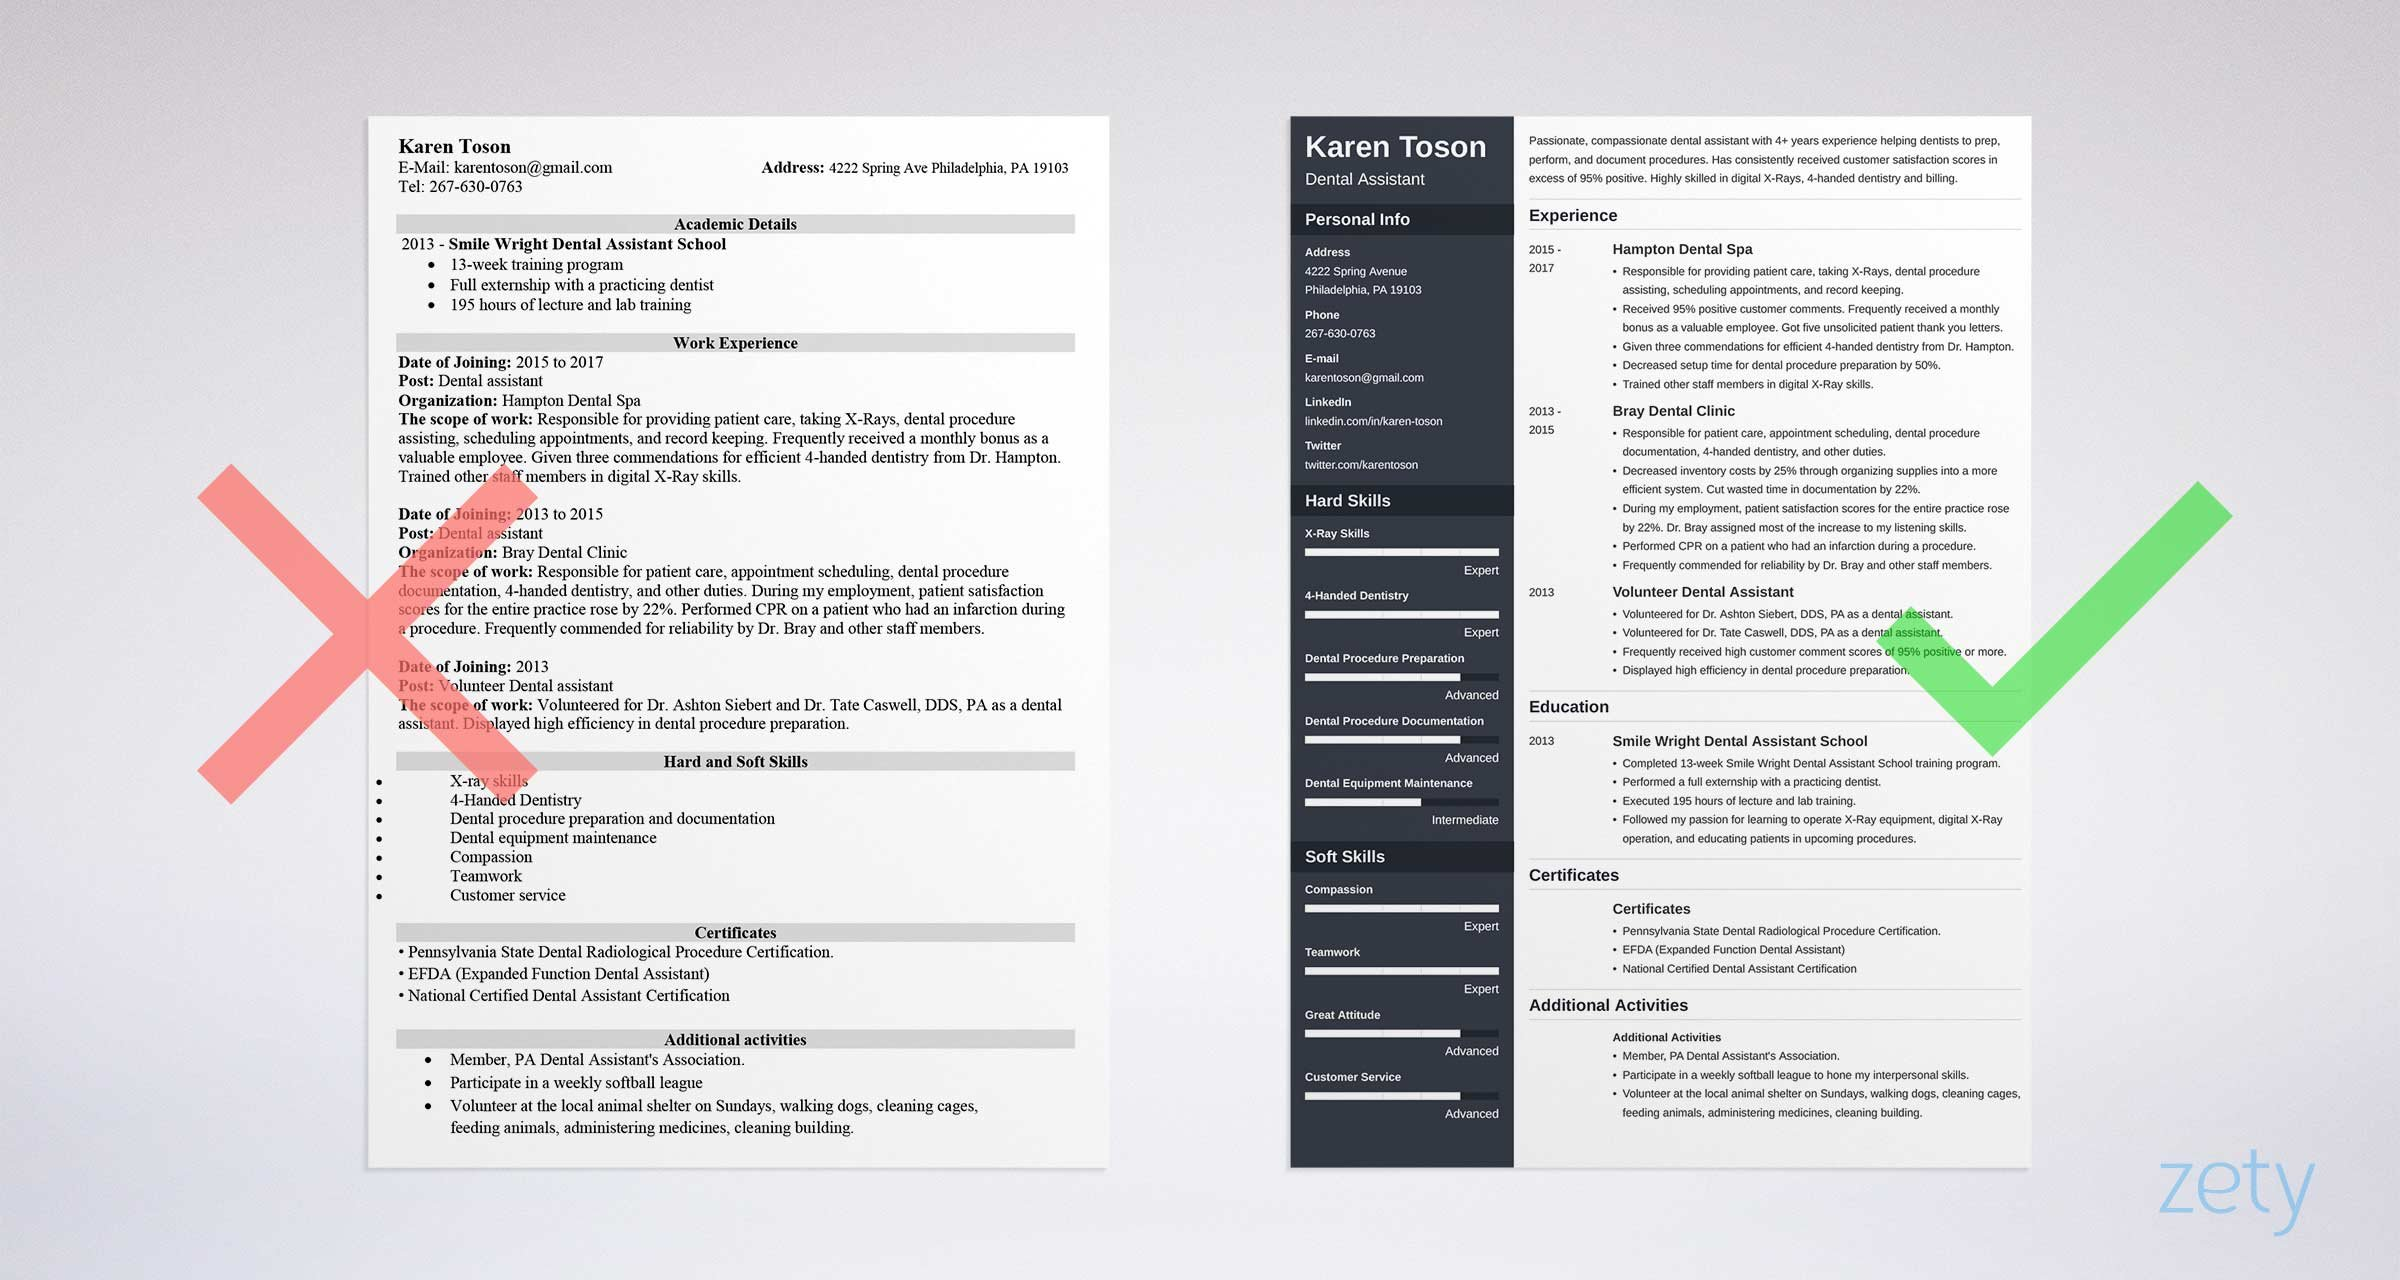 One Page Resume Templates: 15 Examples to Download and Use Now